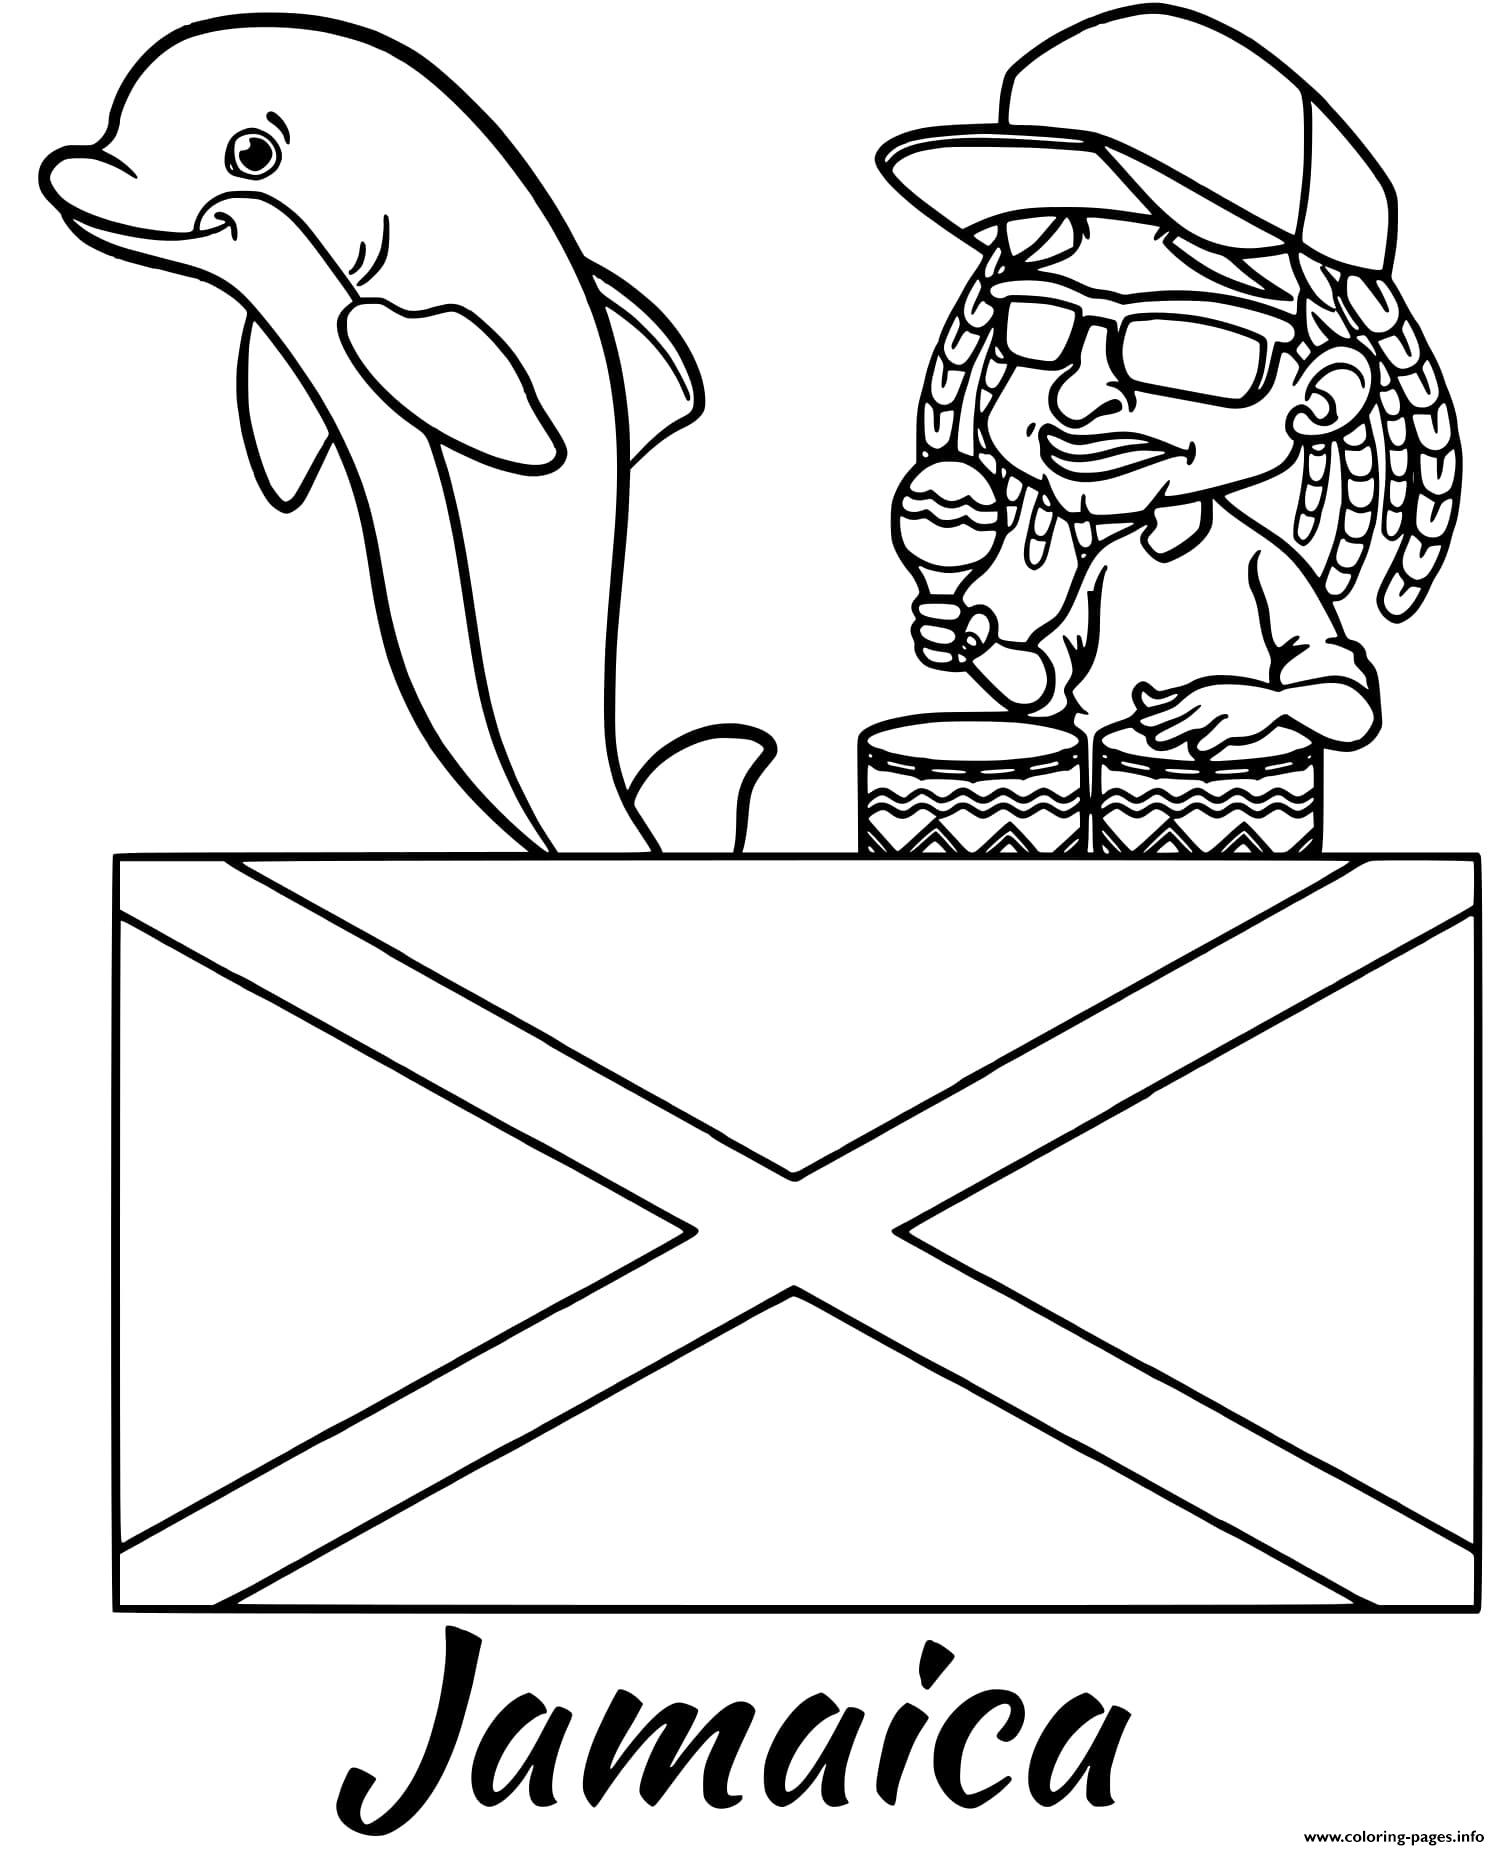 jamaica coloring pages jamaican coloring pages coloring home coloring jamaica pages